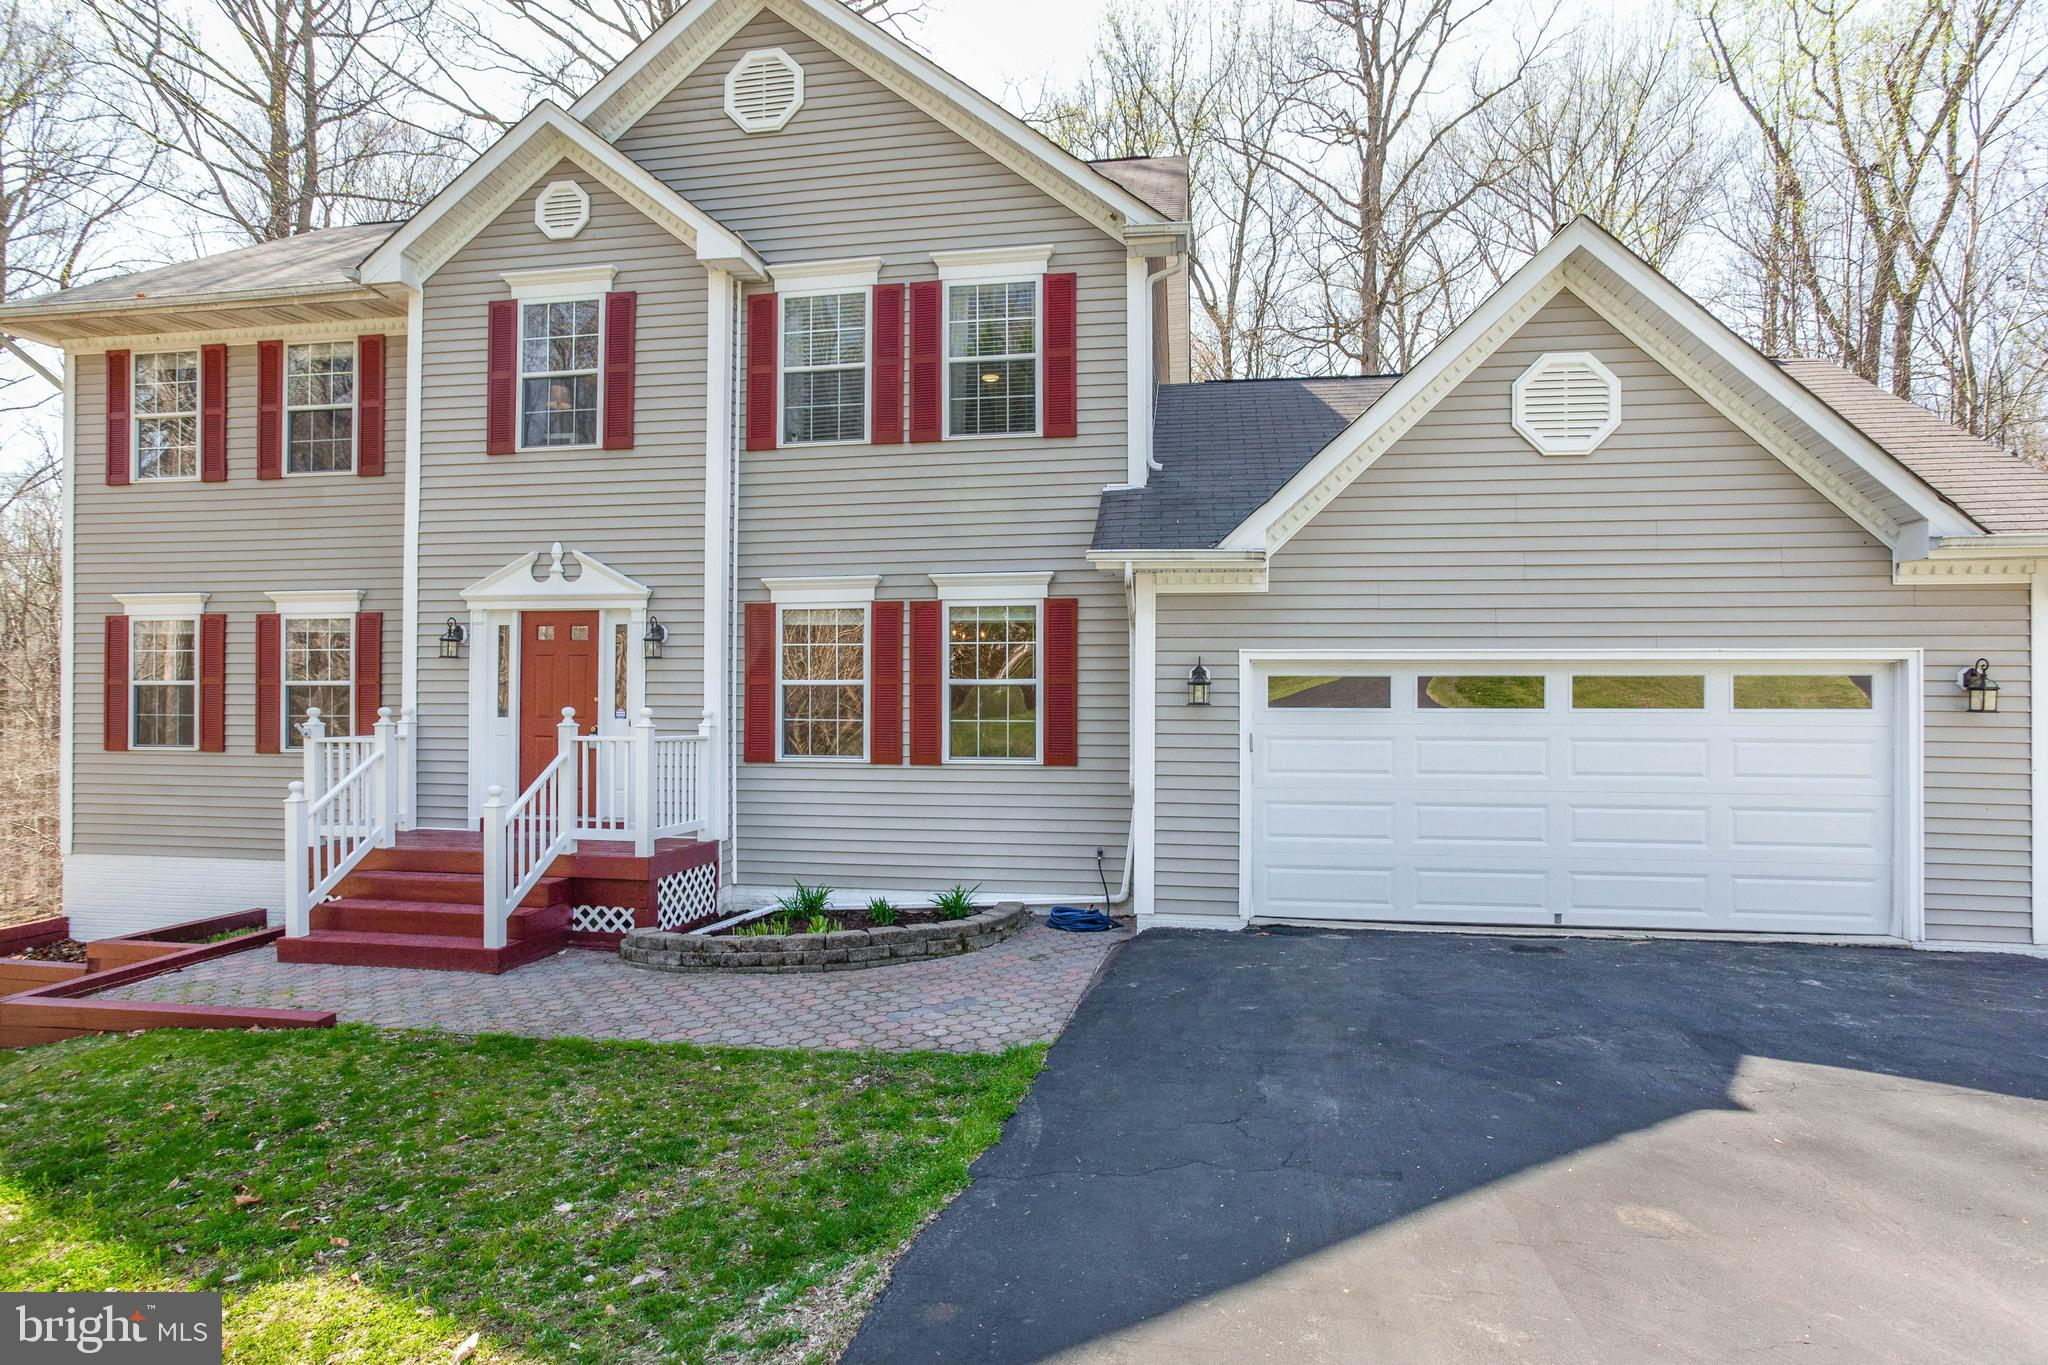 10900 TWO SISTERS LANE, DUNKIRK, MD 20754